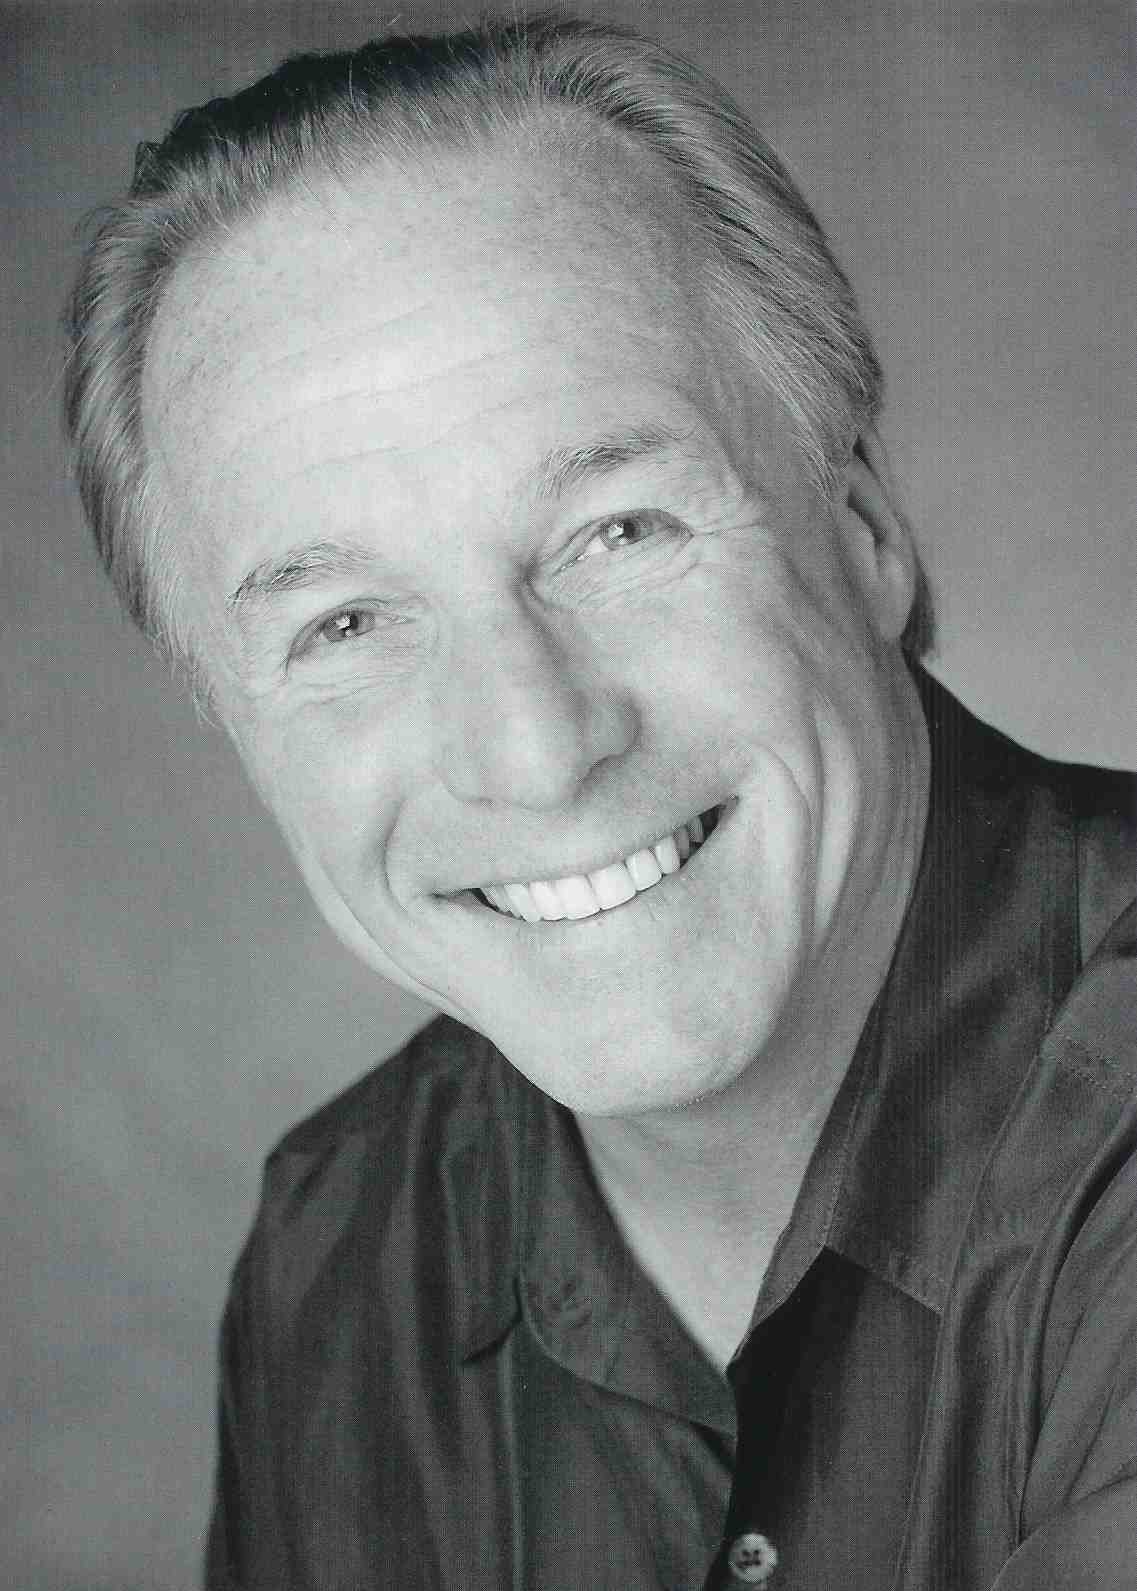 Jackie 'The Joke Man' Martling at The Stanhope House